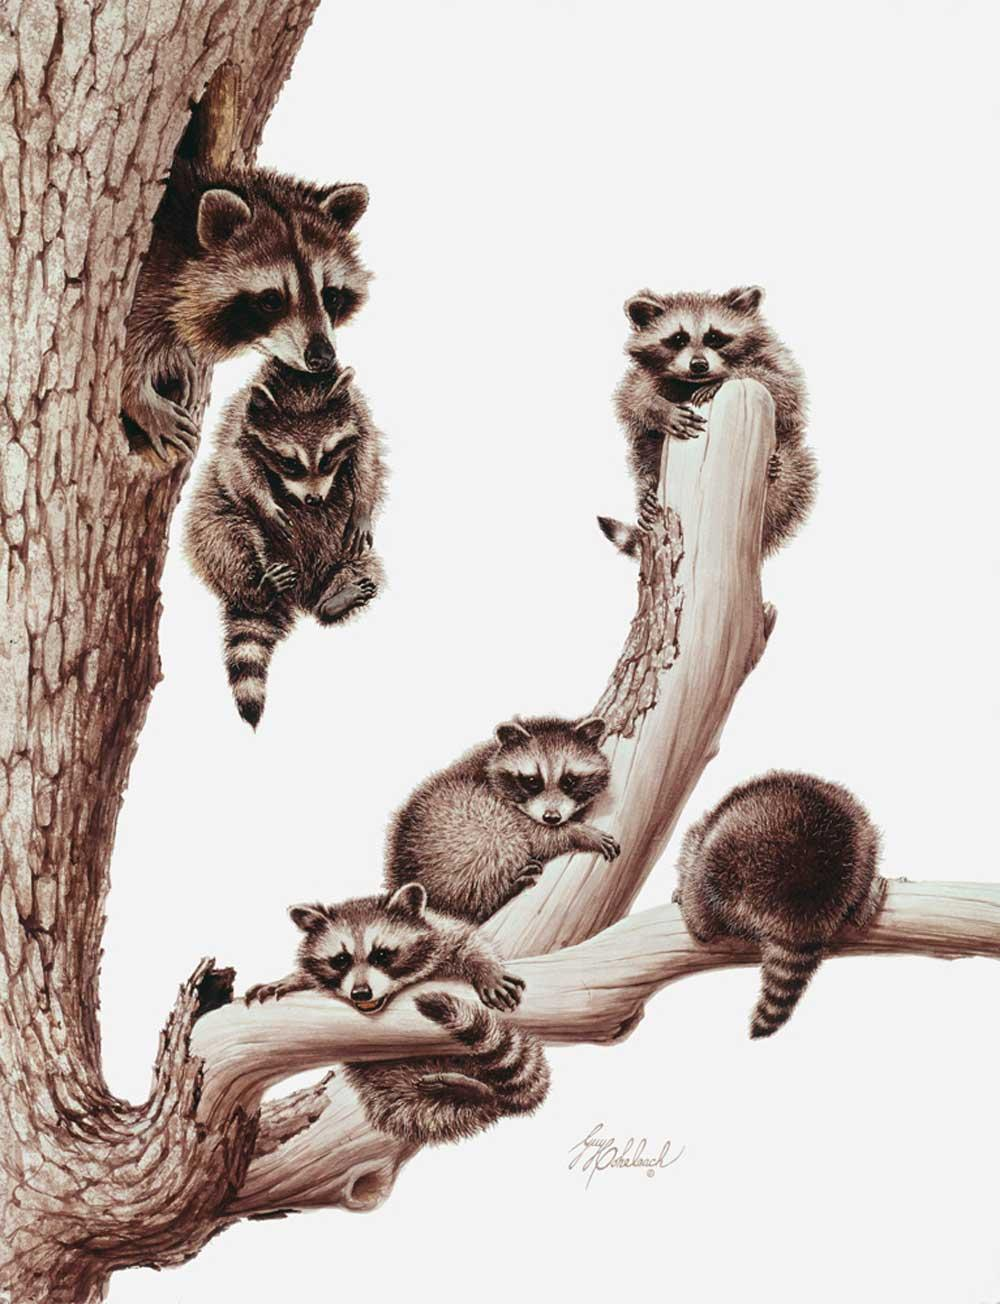 """Raccoons""  -  26"" x 20"" ""Raccoons"" - Critters  Small Game Paintings  Small Animals in Art"